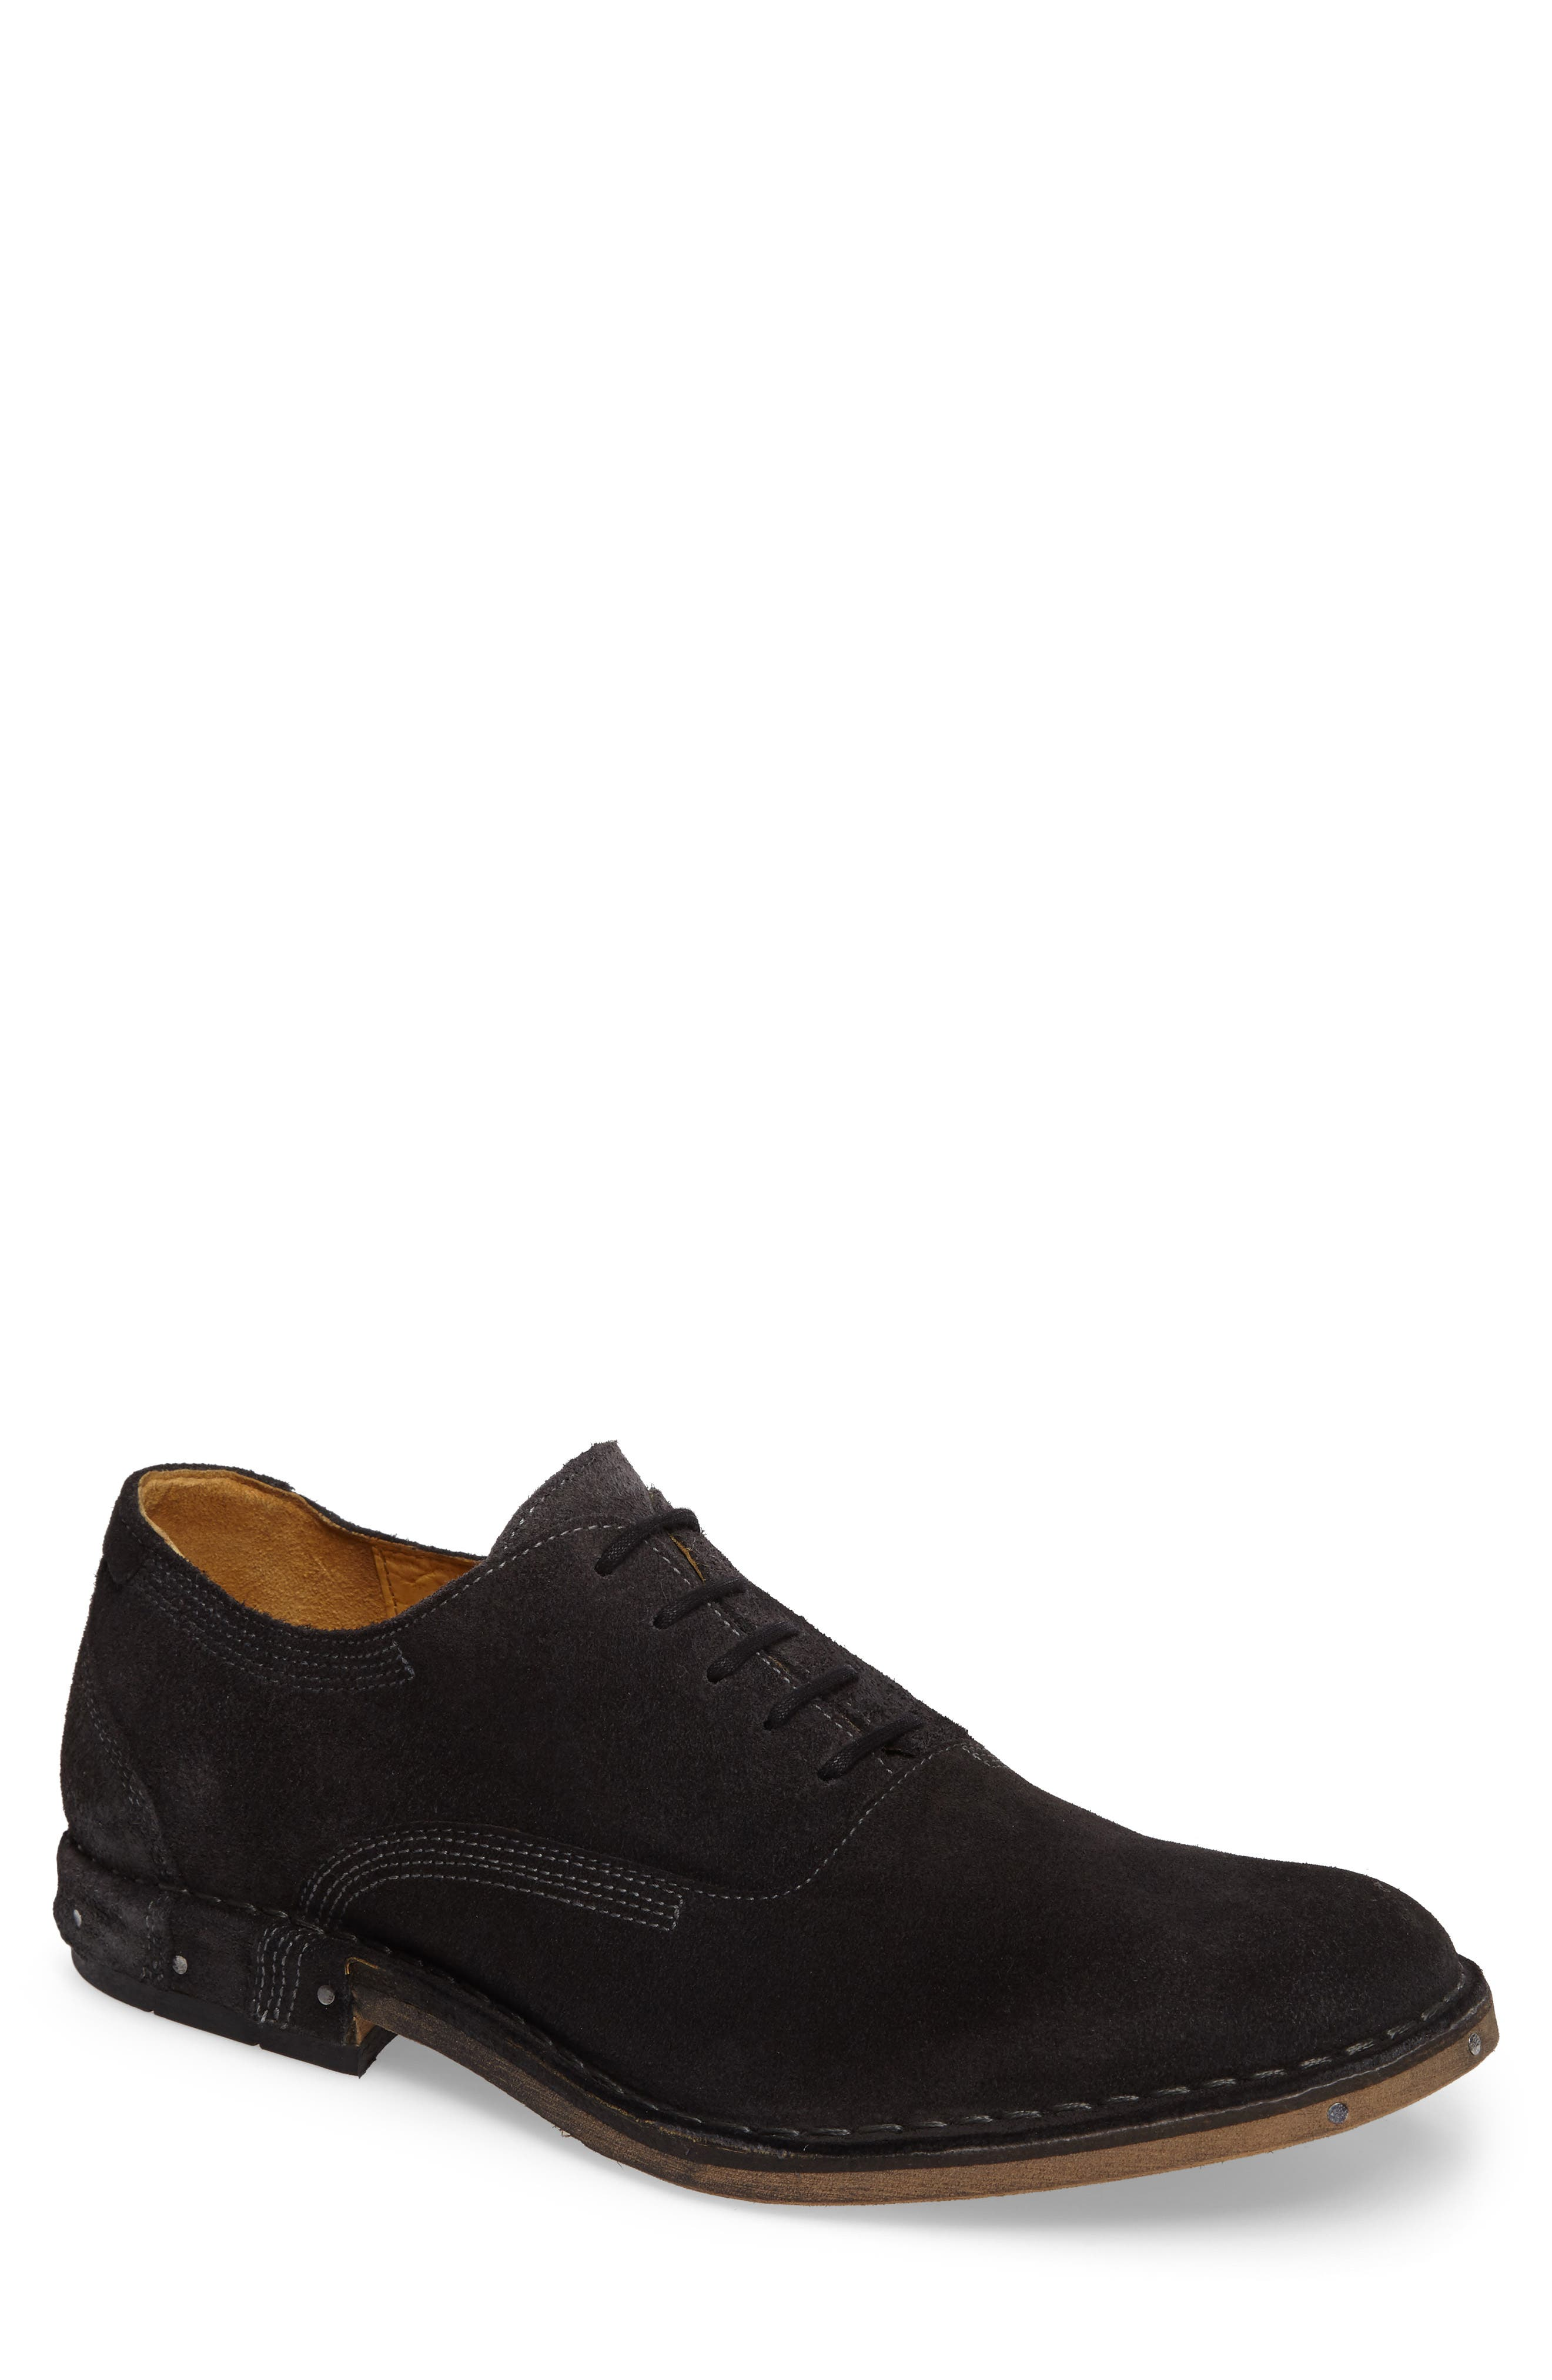 Fly London Hawk Plain Toe Oxford (Men)